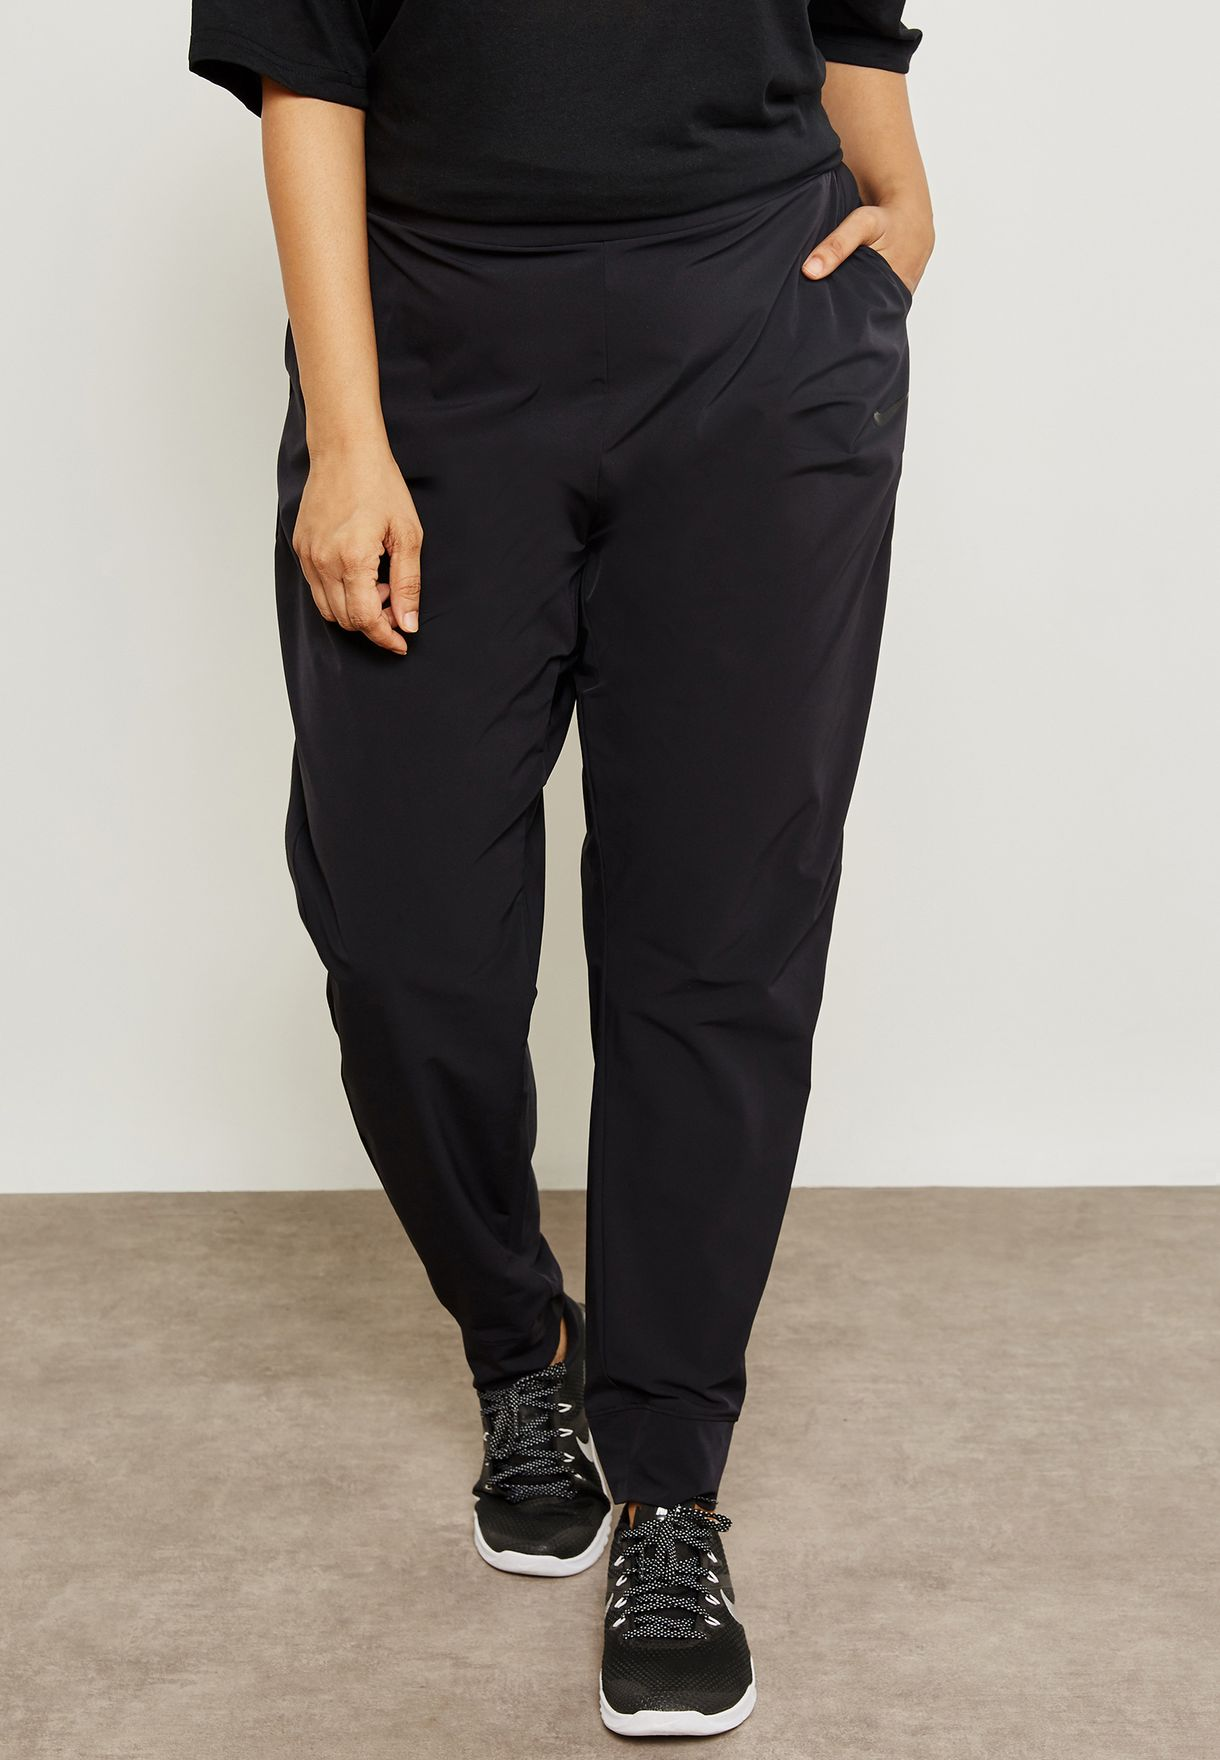 4a07963d838 Shop Nike black Flex Bliss Pants AA8295-010 for Women in Bahrain -  NI727AT31BUY